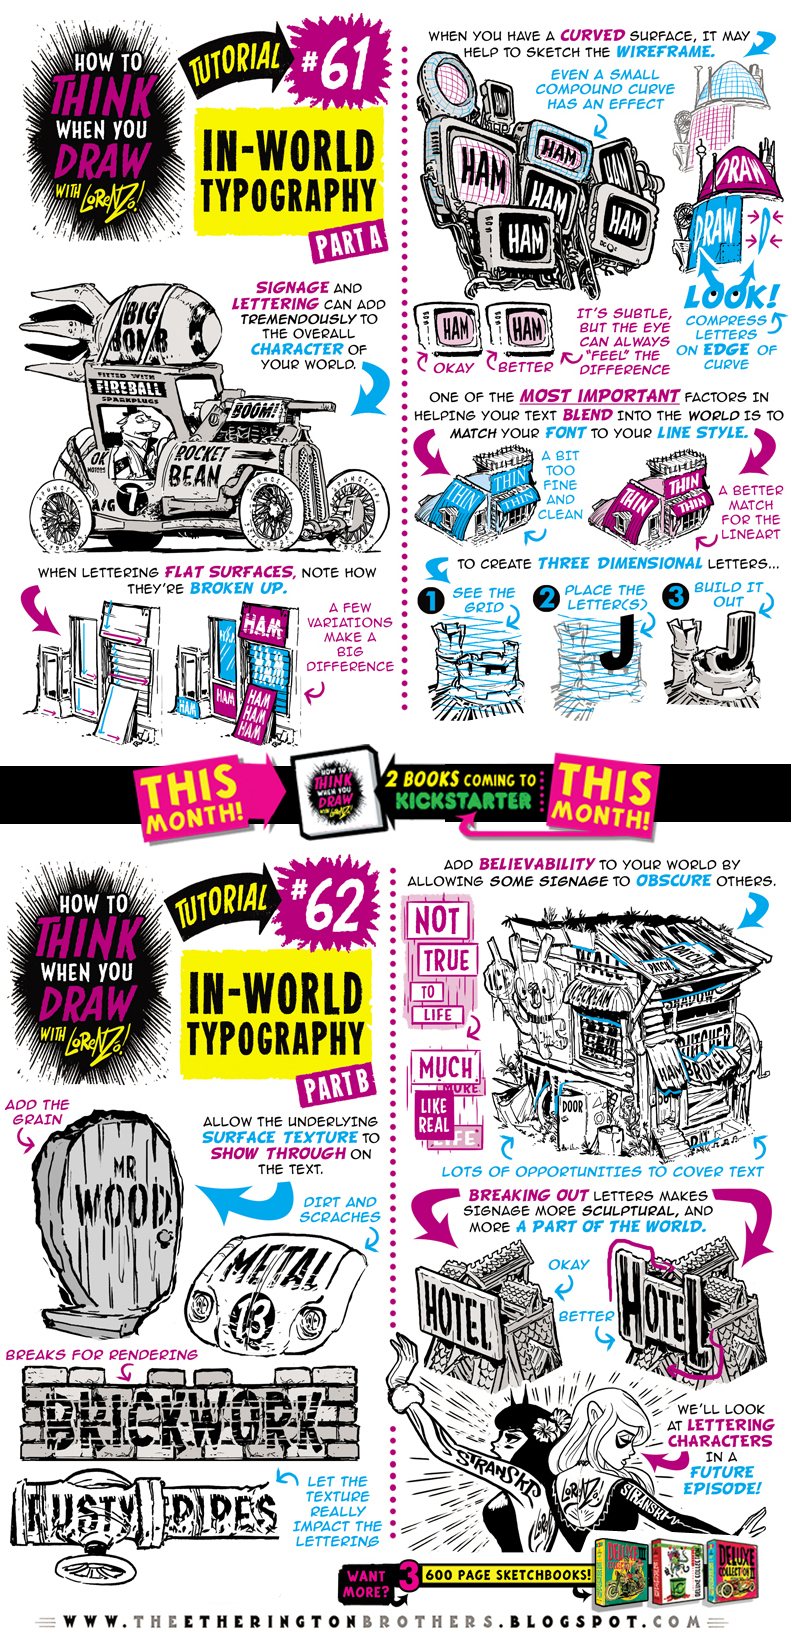 How to THINK when you draw IN-WORLD TYPOGRAPHY! by EtheringtonBrothers